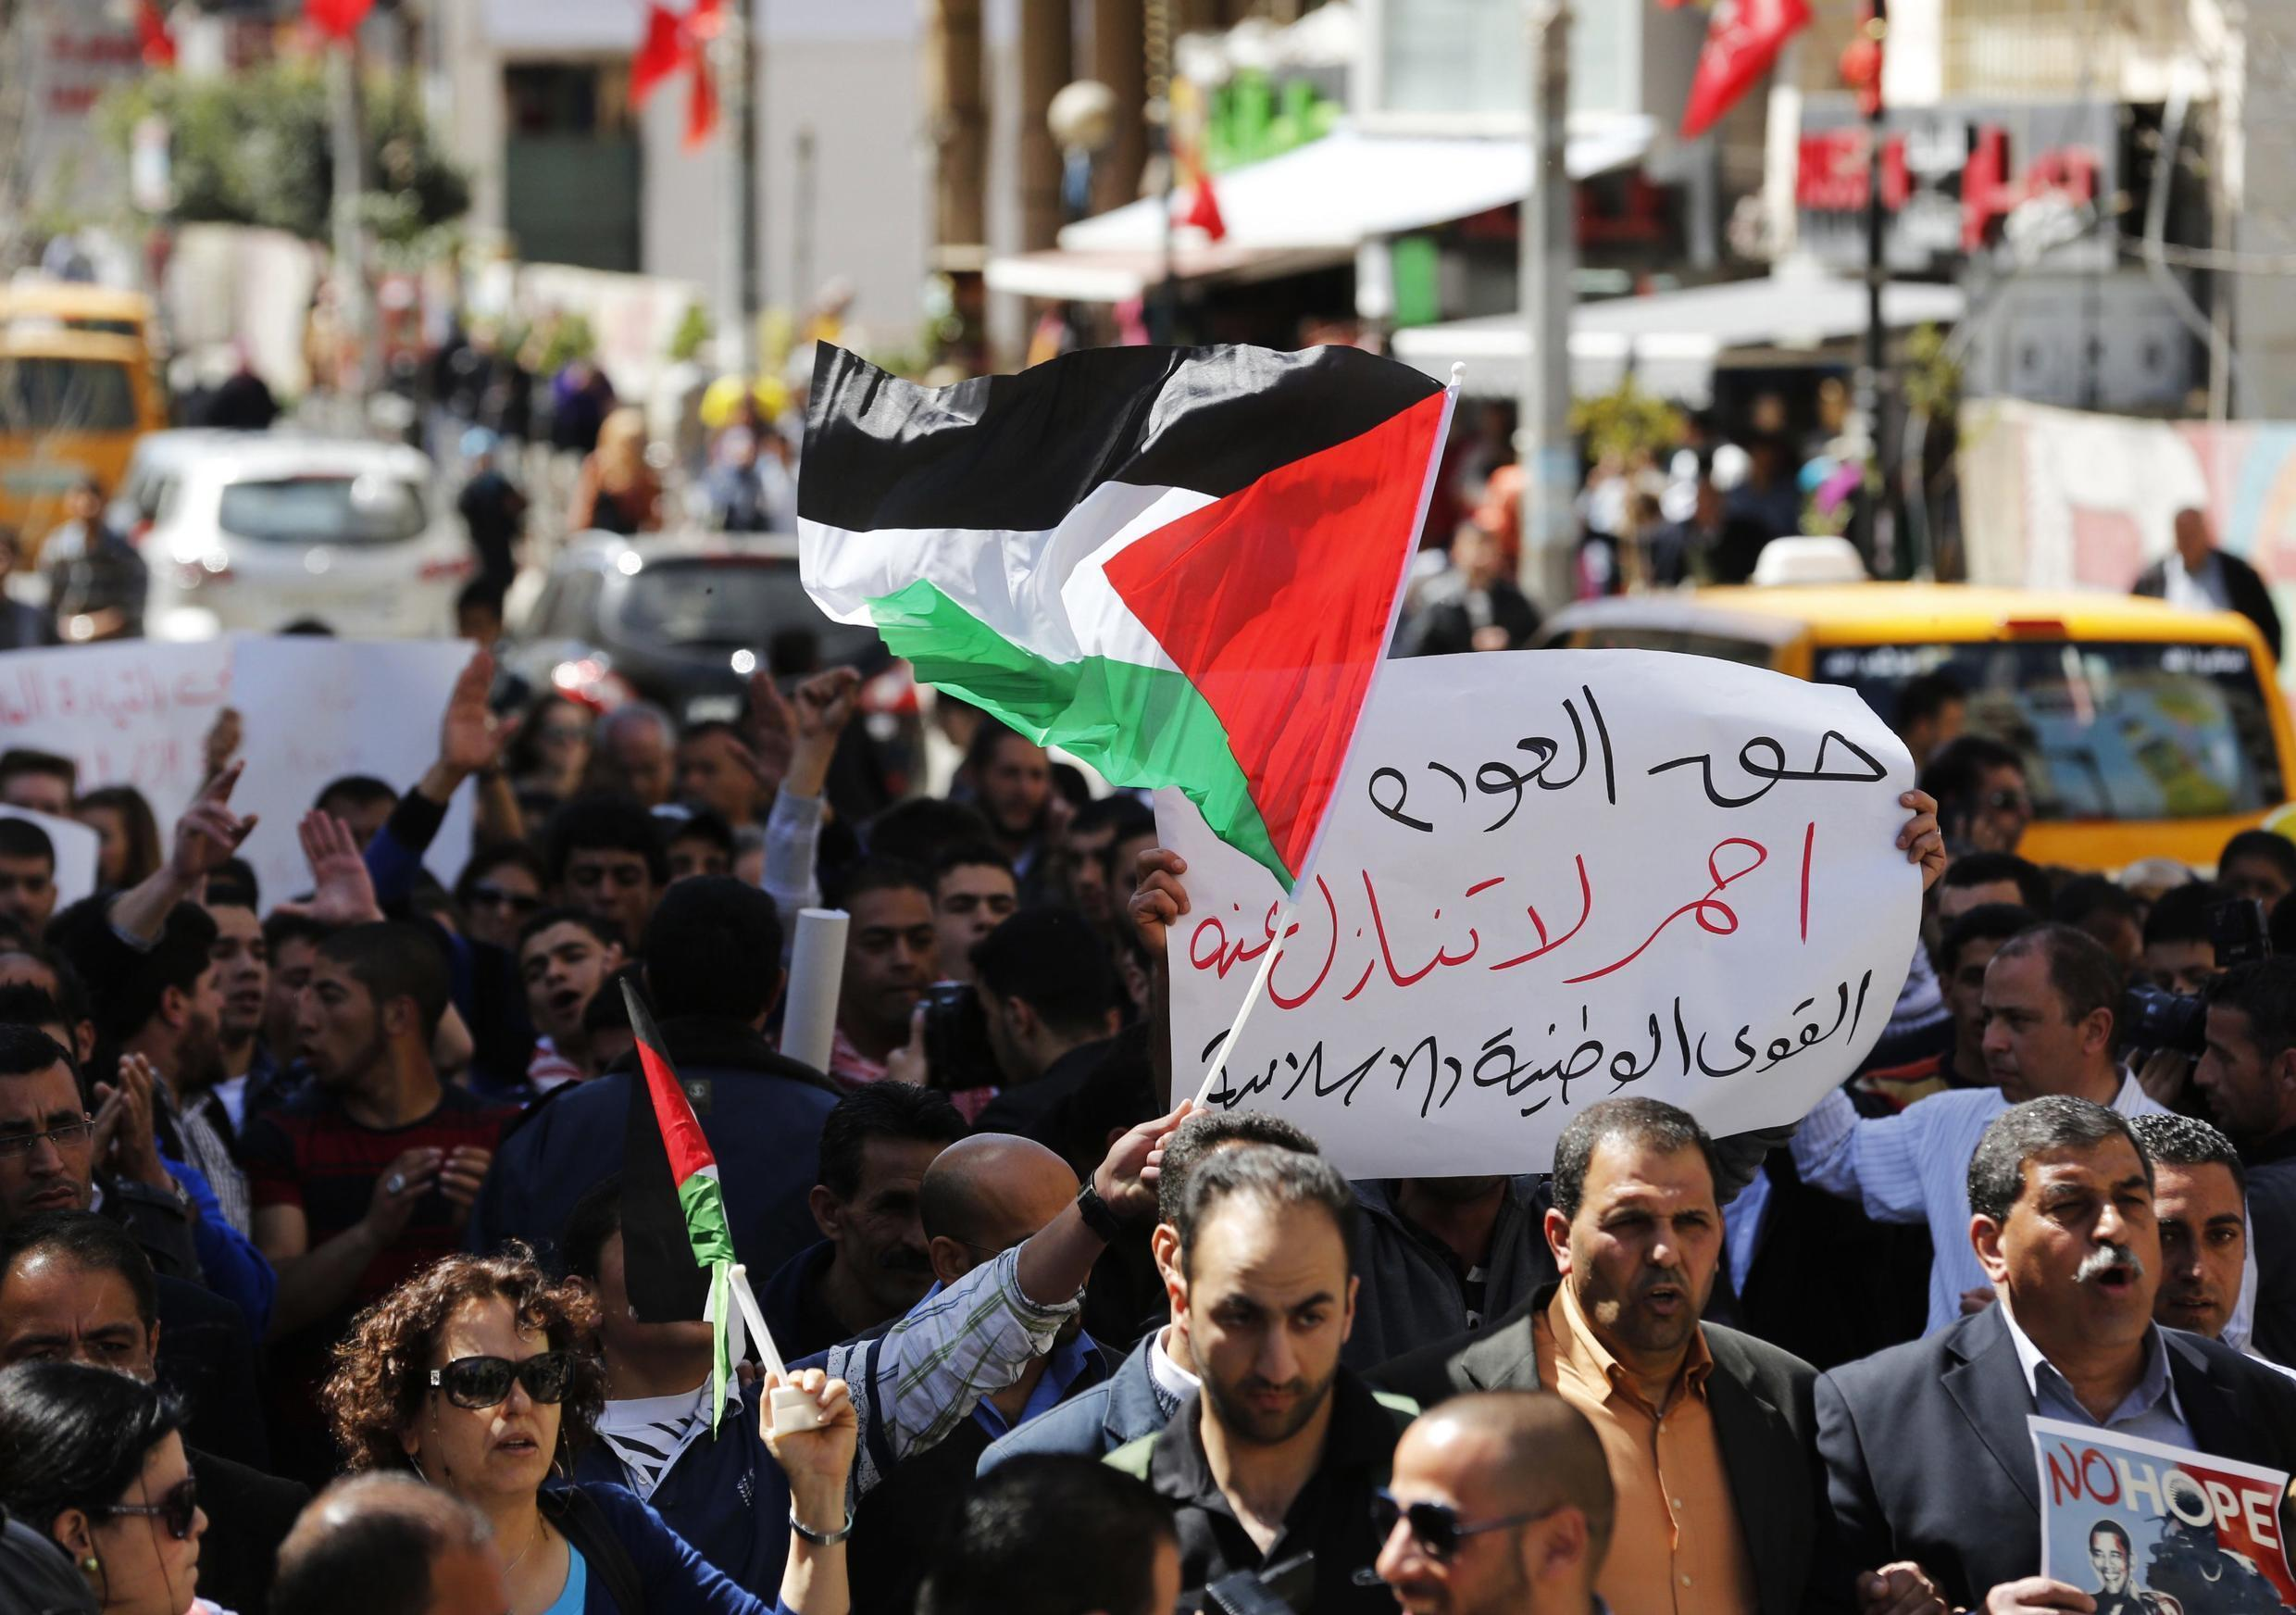 Palestinian protesters during a demonstration against U.S. President Barack Obama in Ramallah, 21 March, 2013